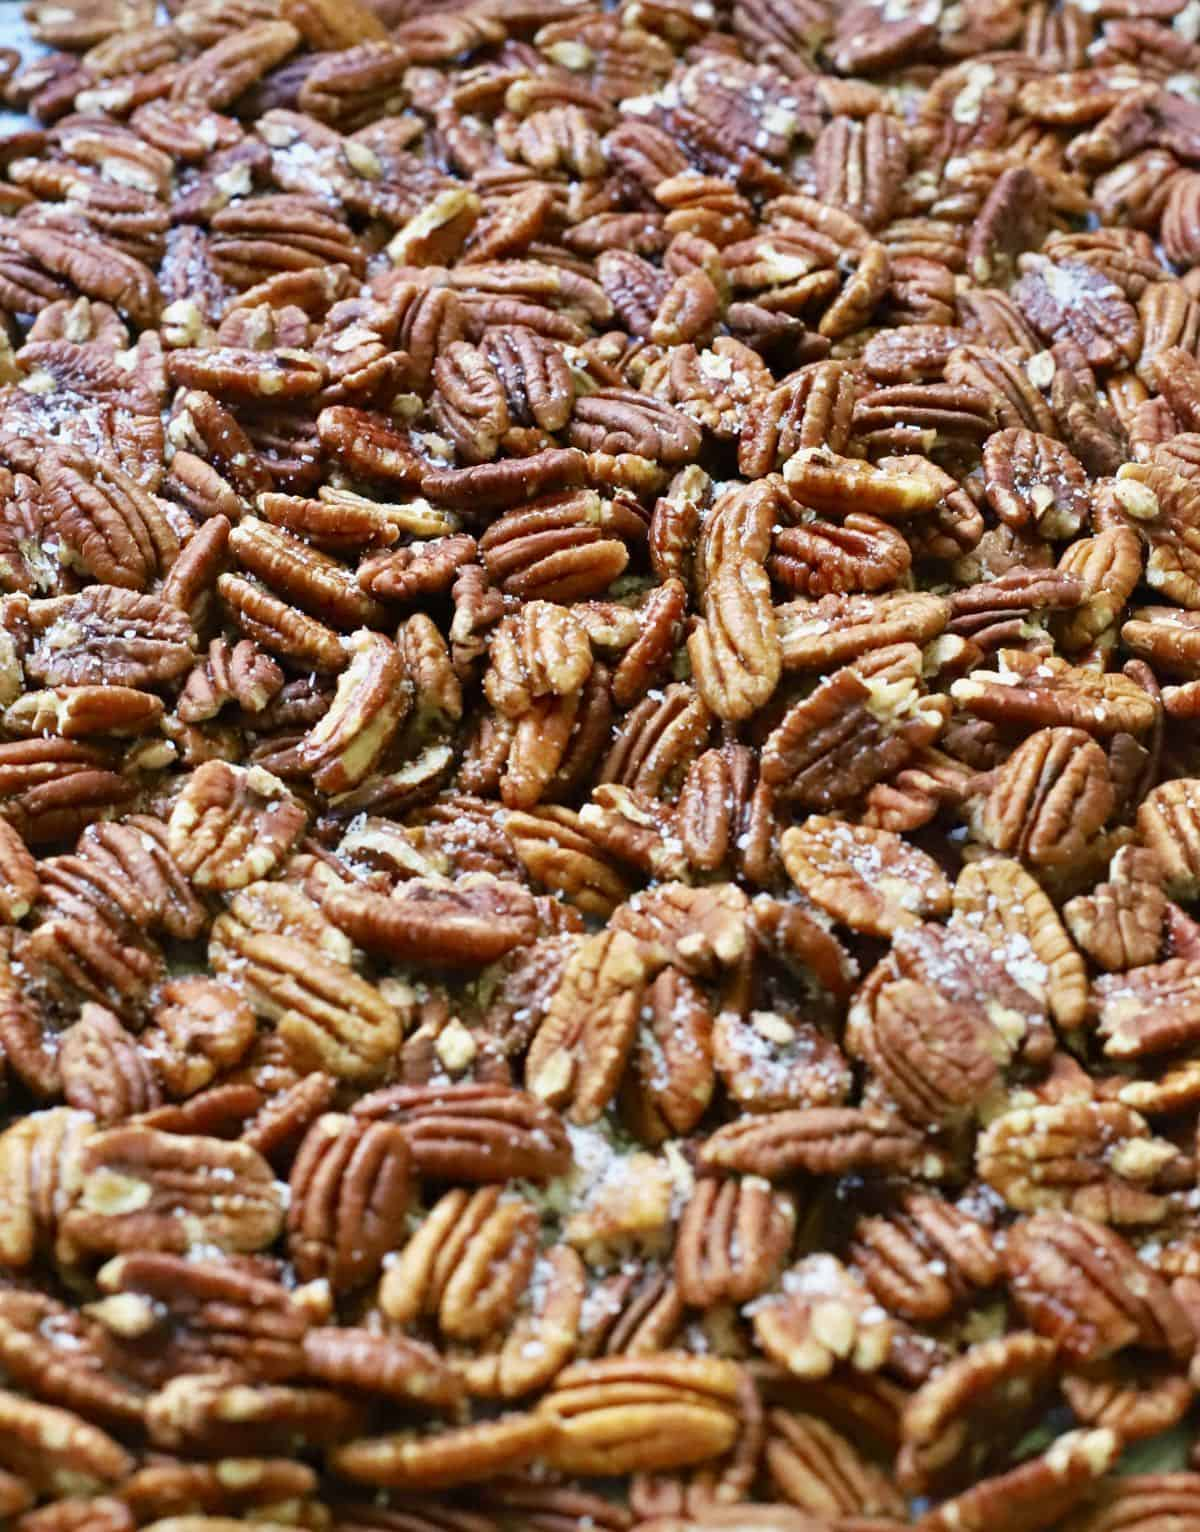 A pan full of roasted pecans.